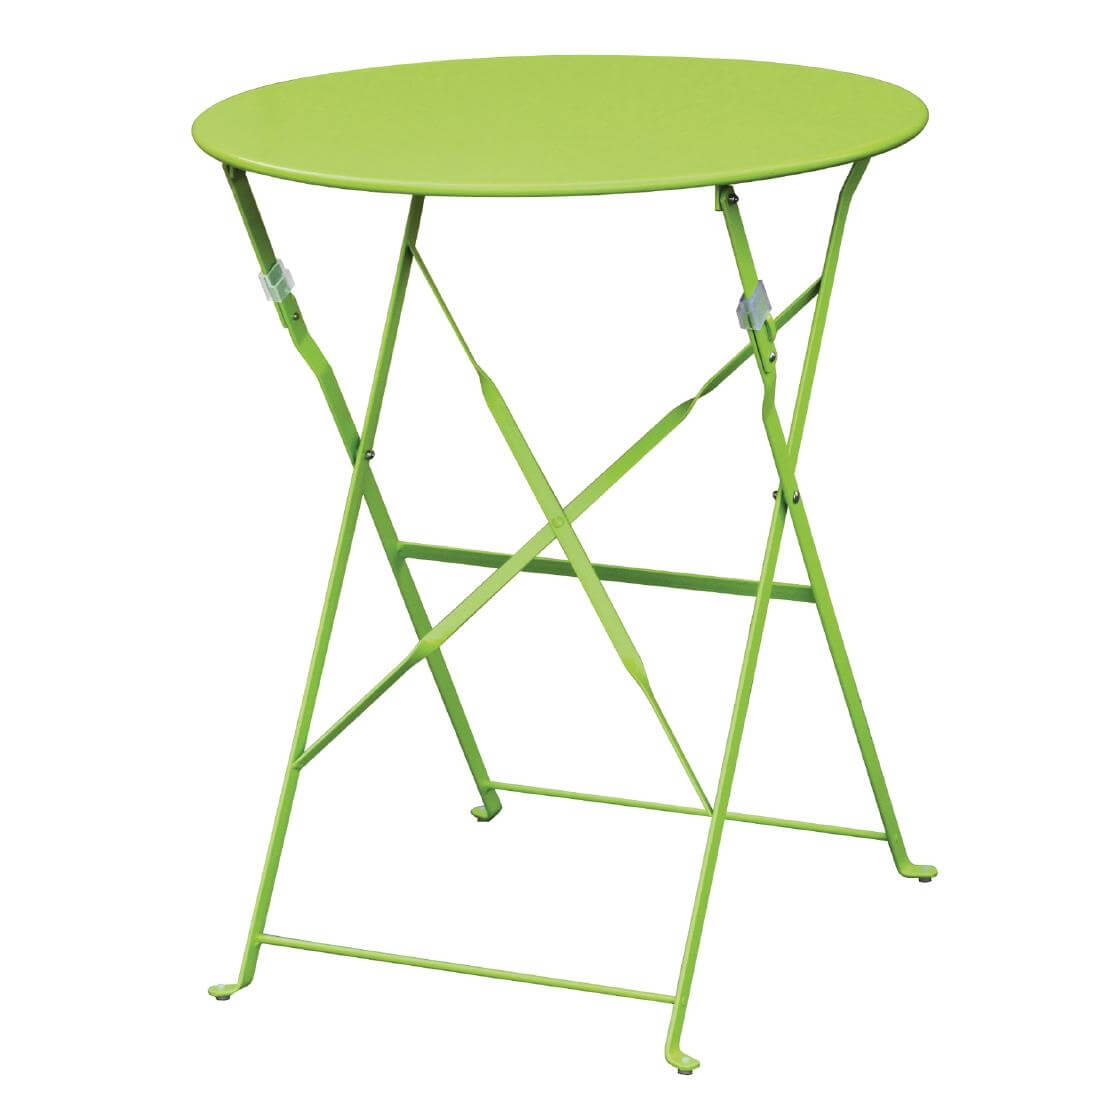 Steel Folding Table Round - Lime